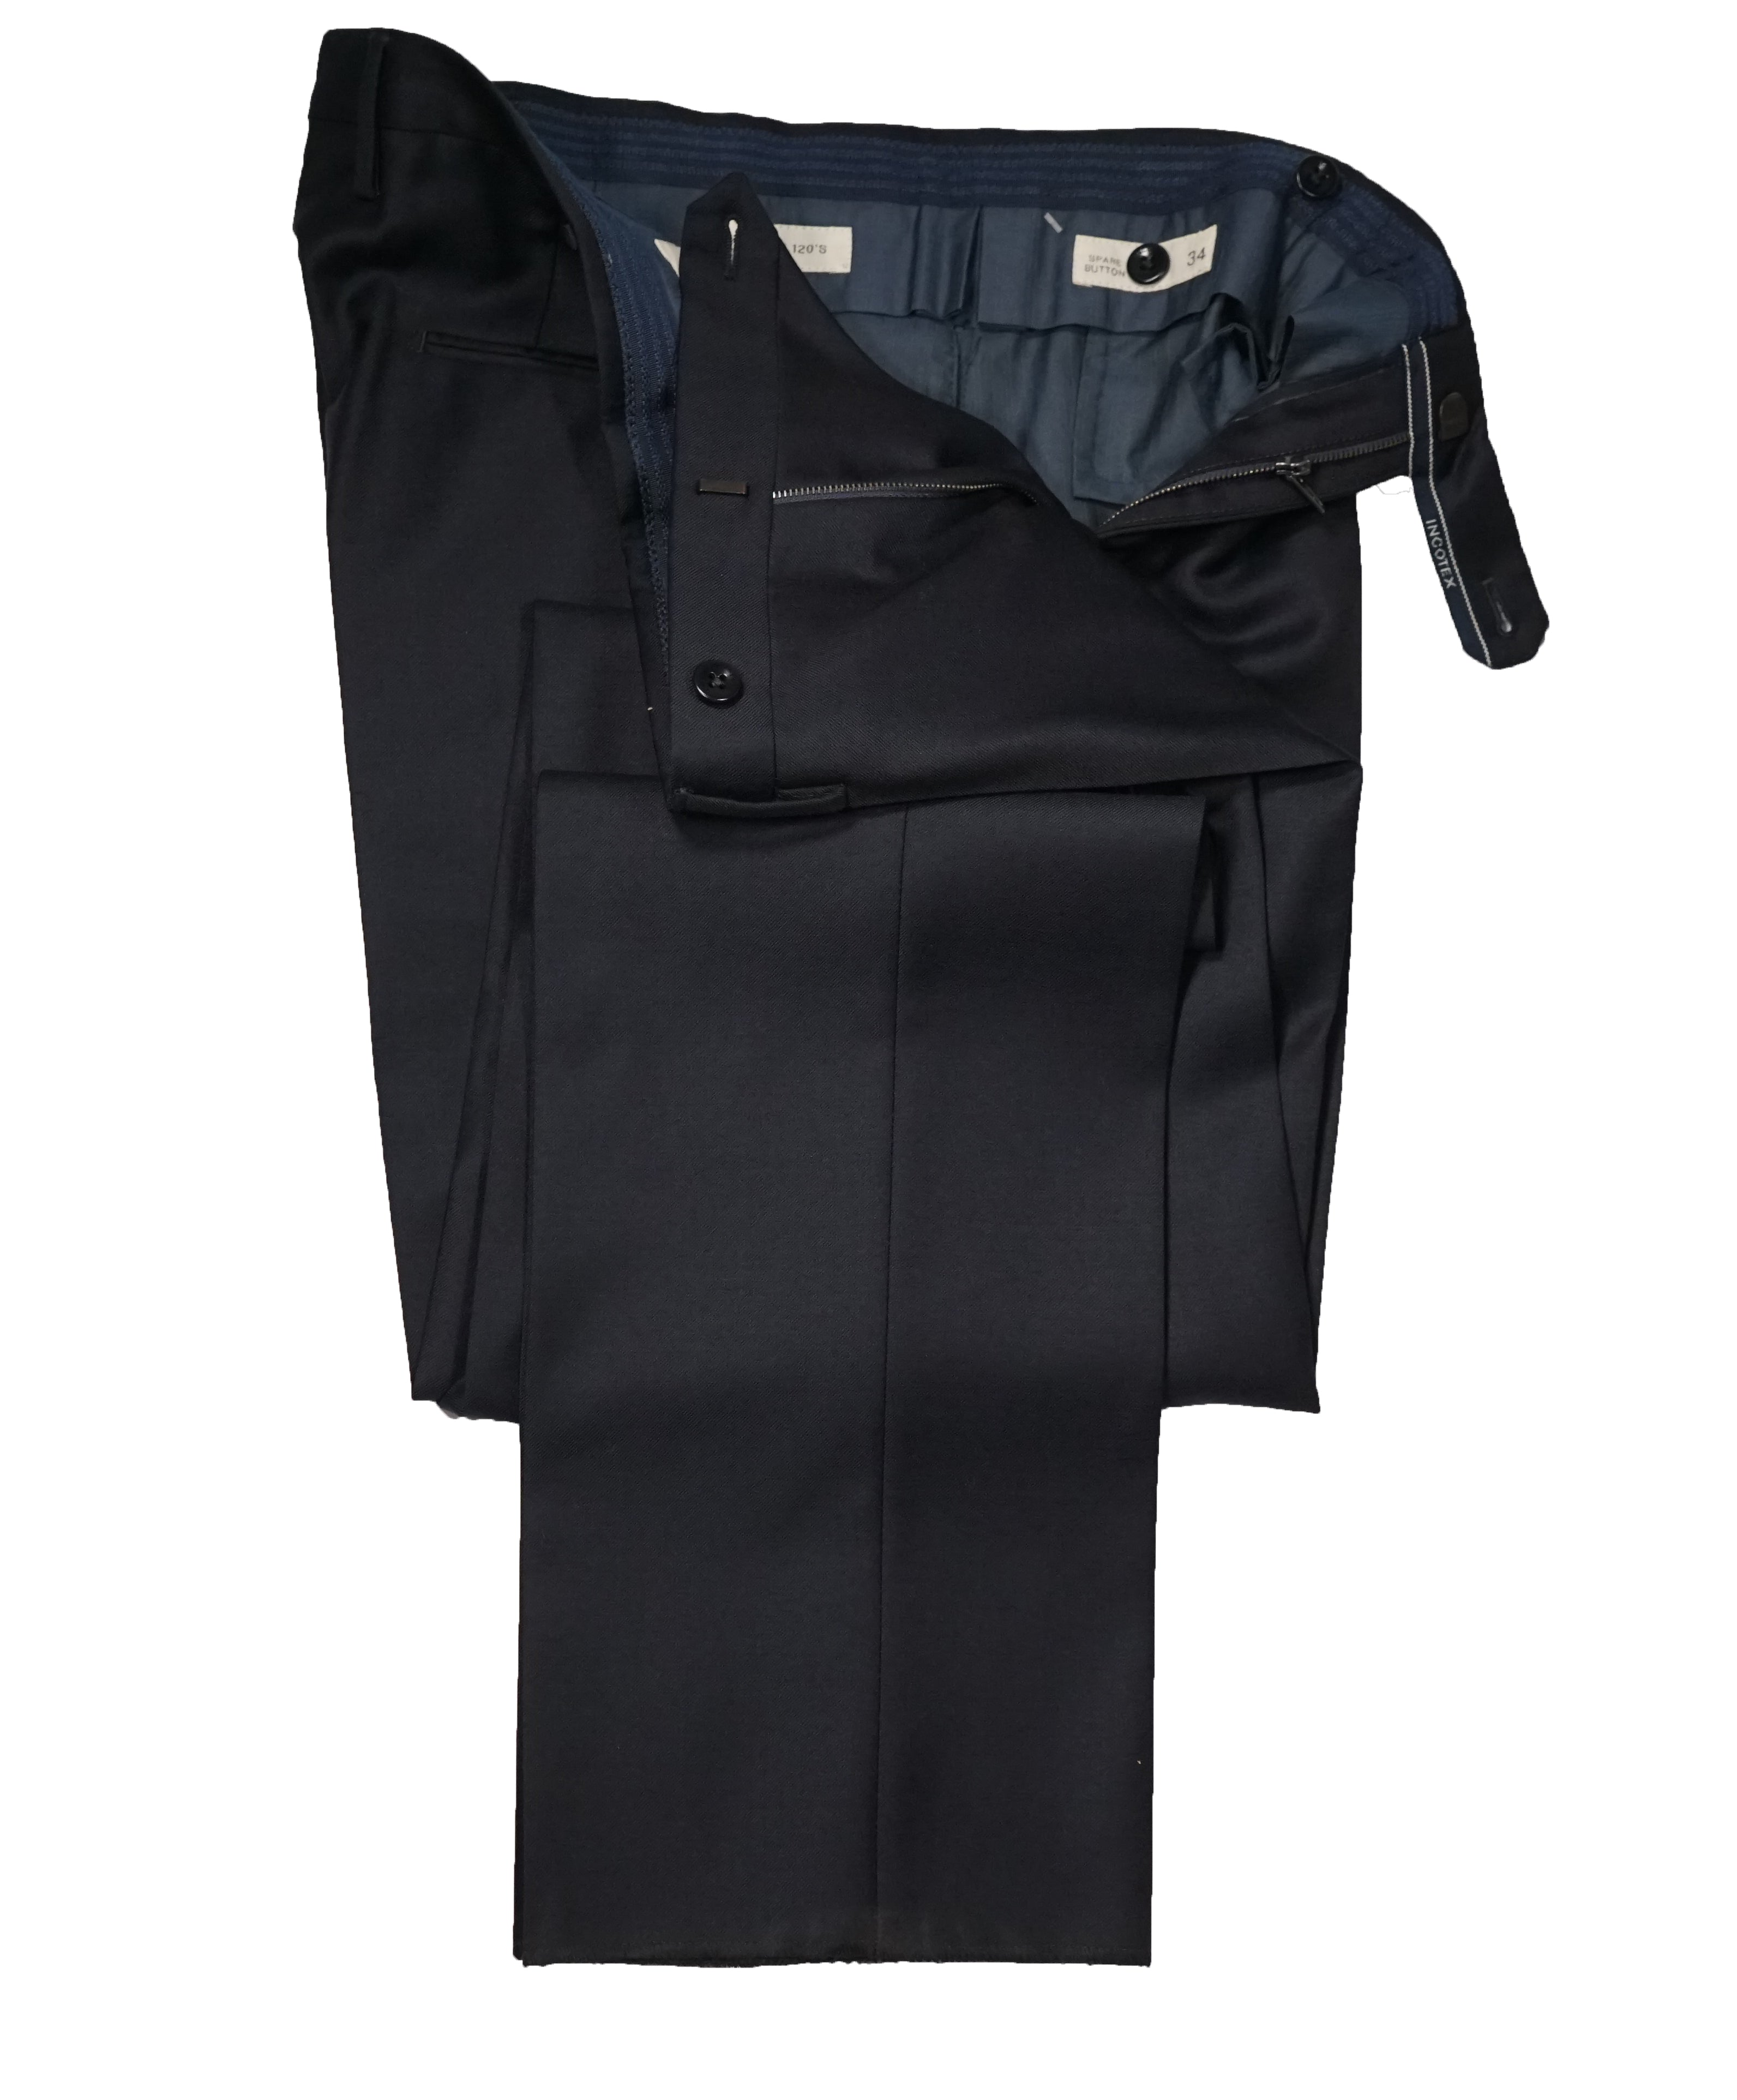 INCOTEX - Navy Blue Slim Fit Dress Pants Super 120's - 34W